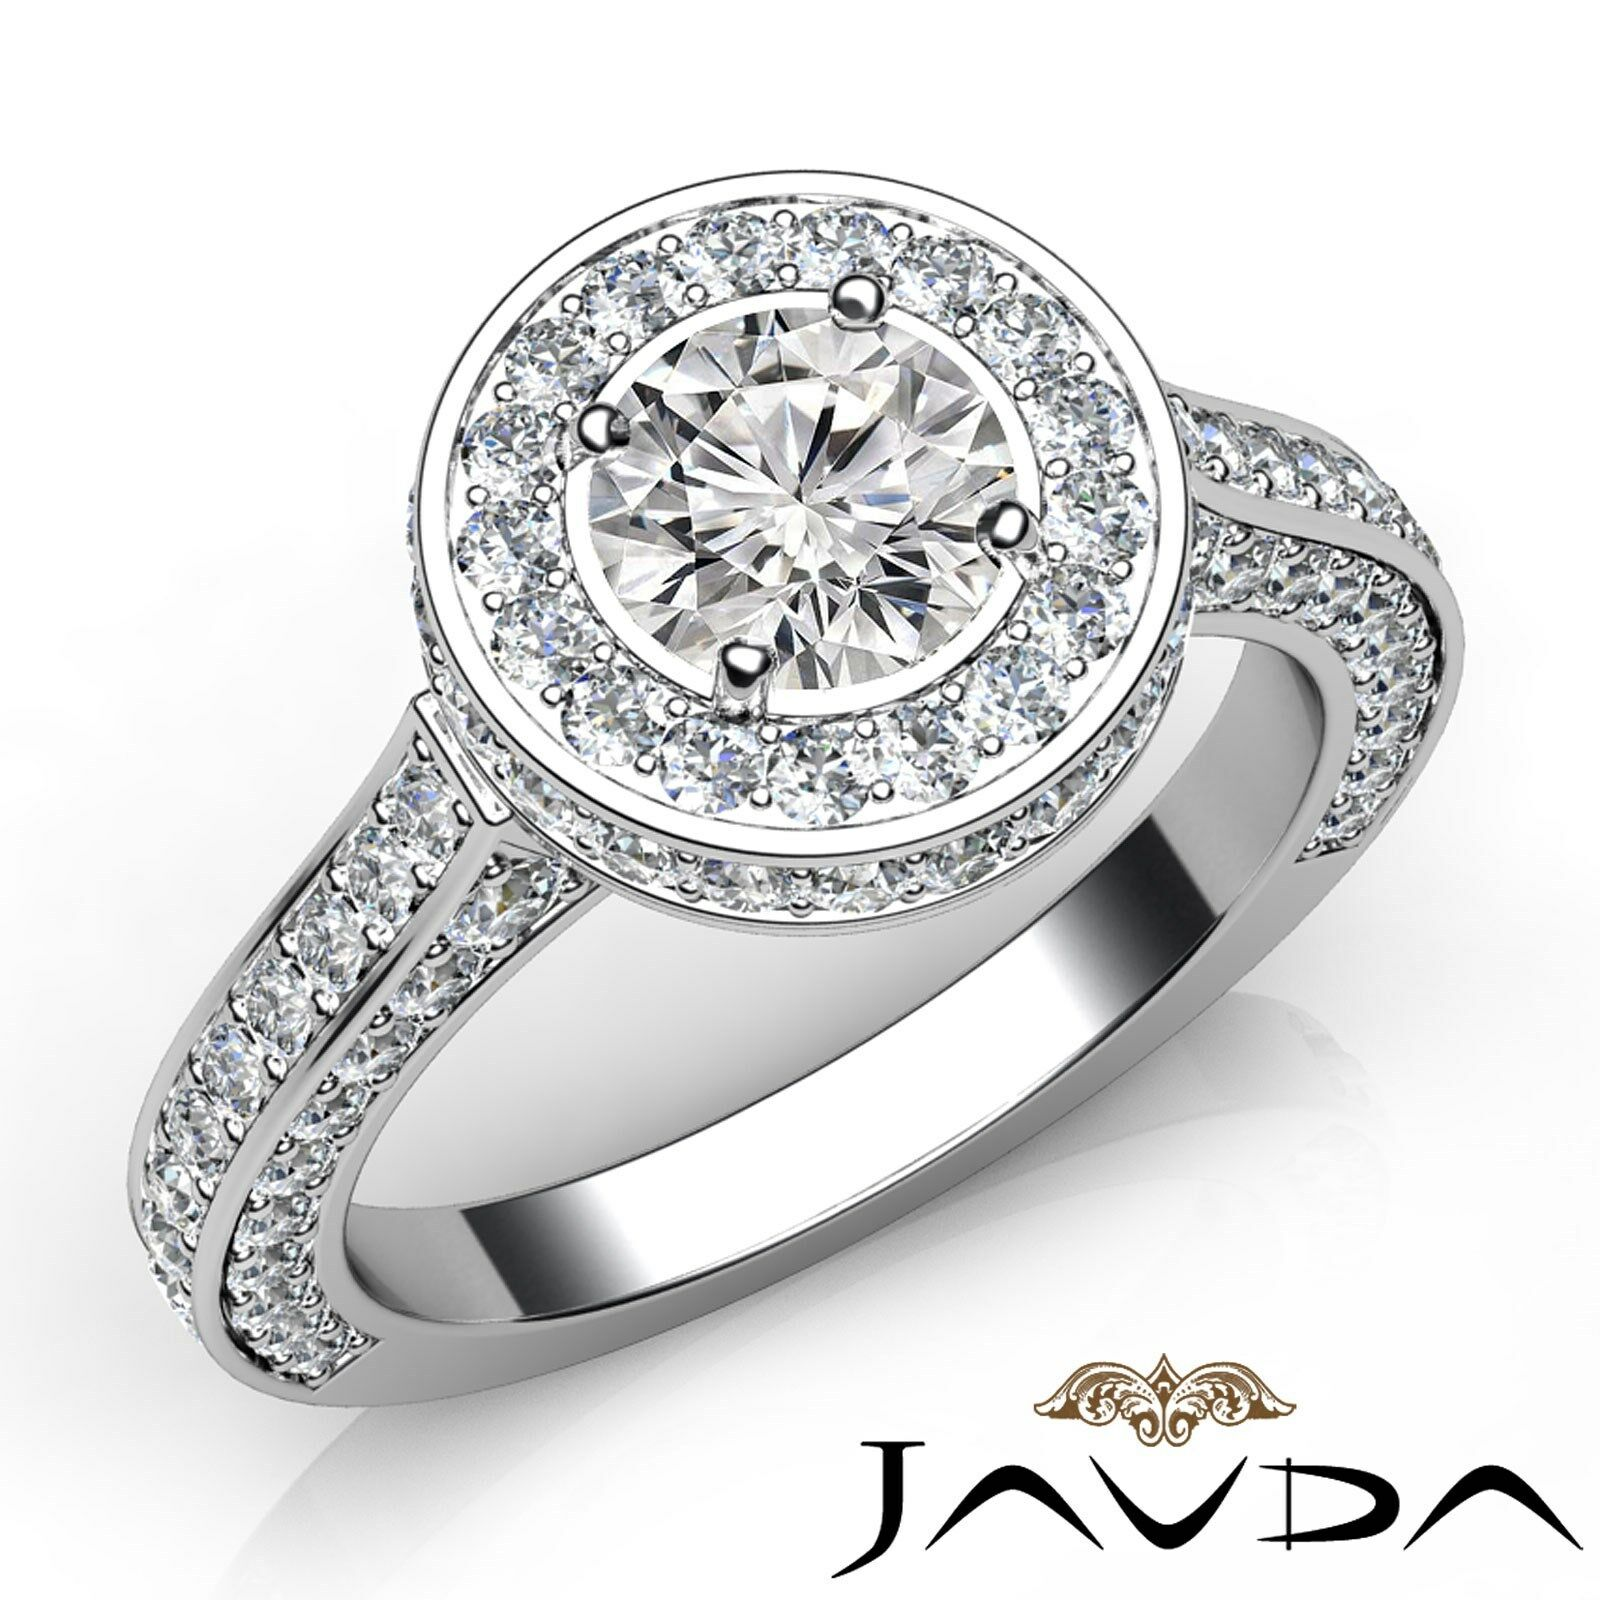 Circa Halo Filigree Round Diamond Engagement Ring GIA I Color VS2 Clarity 3.1Ct